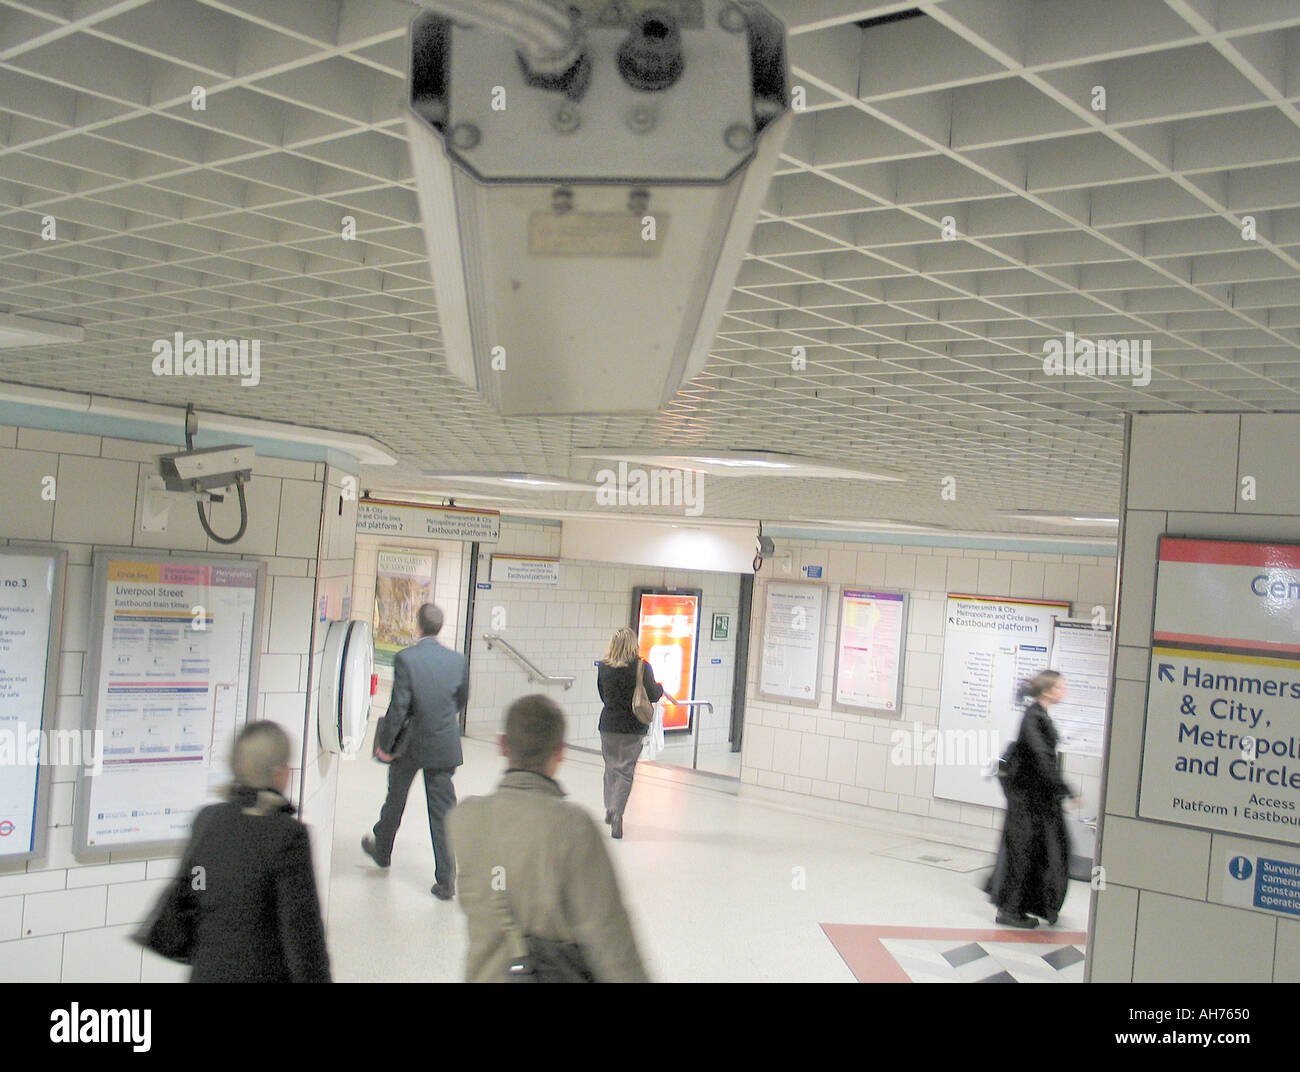 Cctv camera on the London underground with people passing by - Stock Image